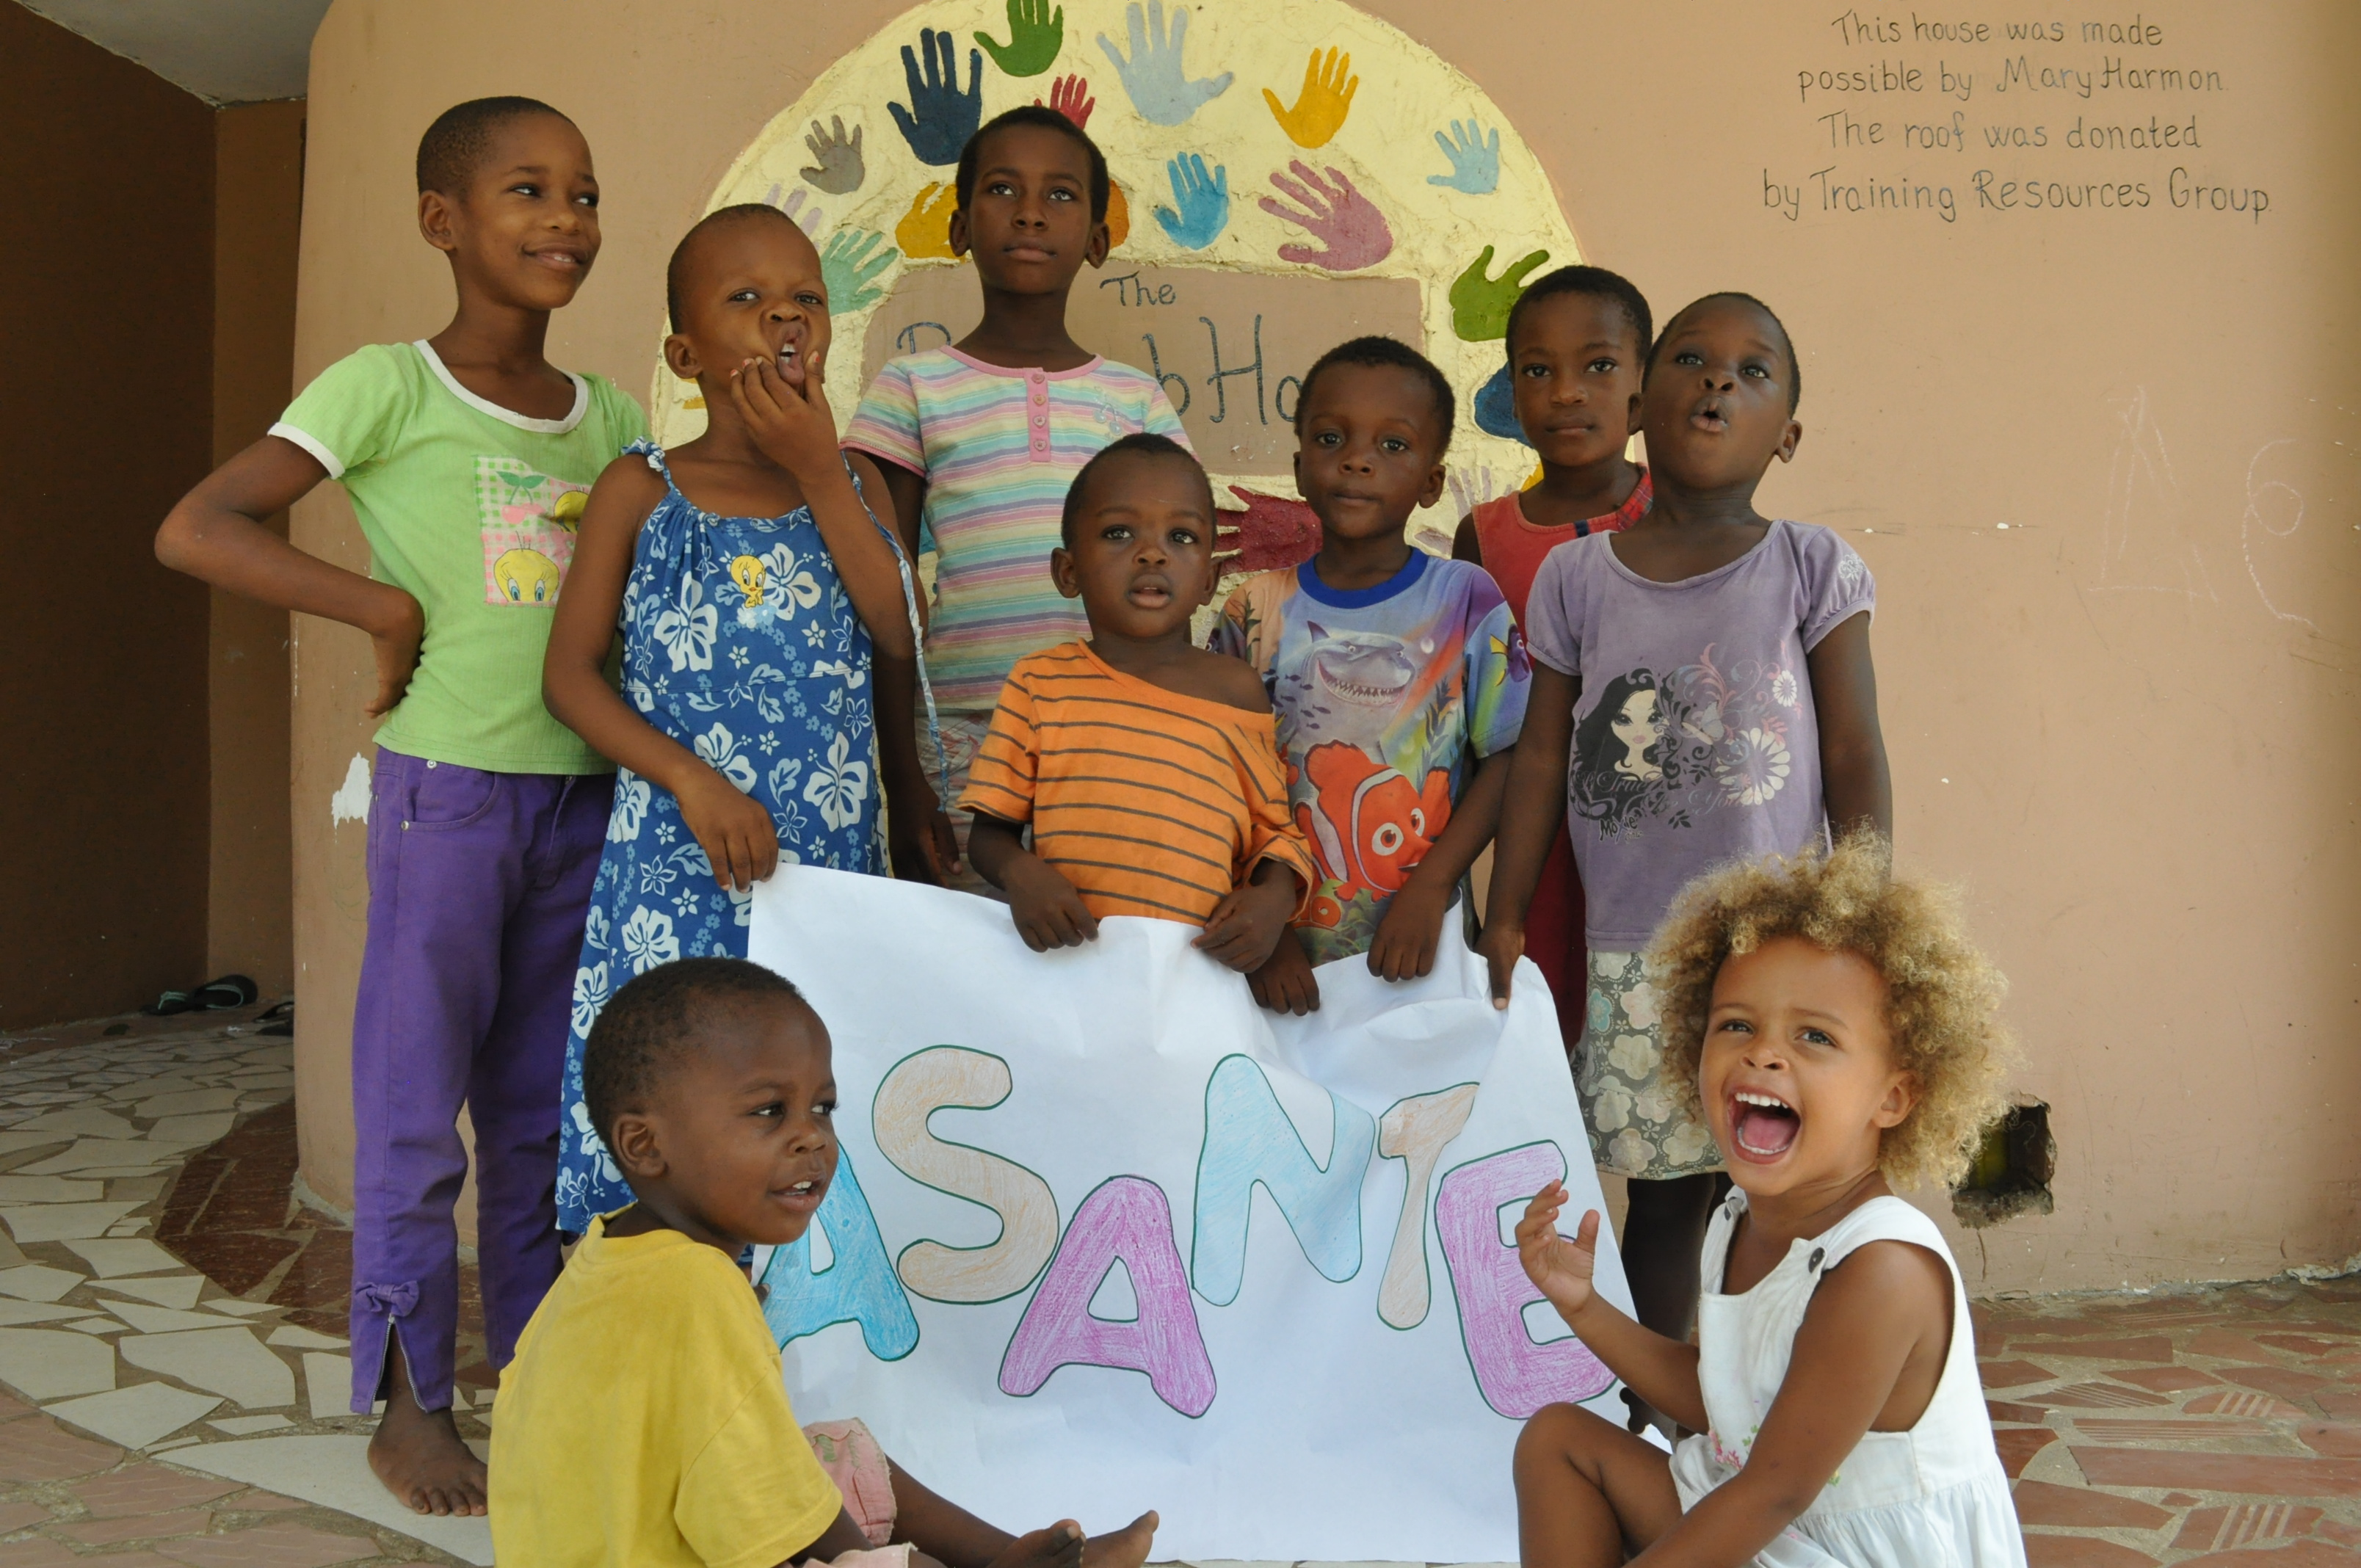 Kids_with_Asante_sign_(14).JPG